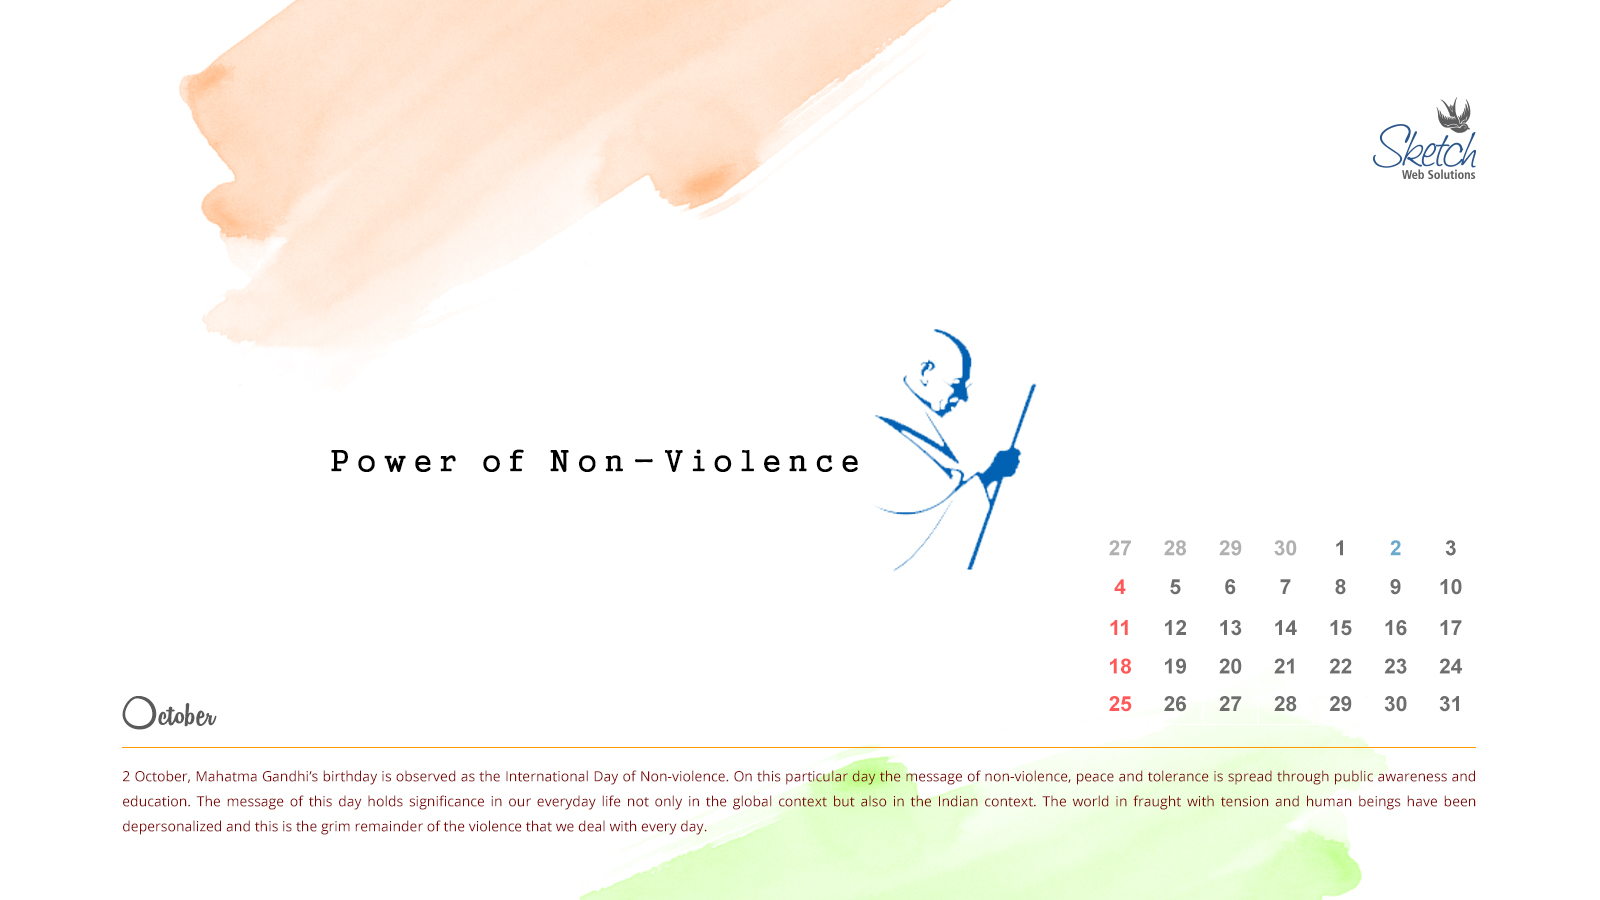 Power of Non-violence